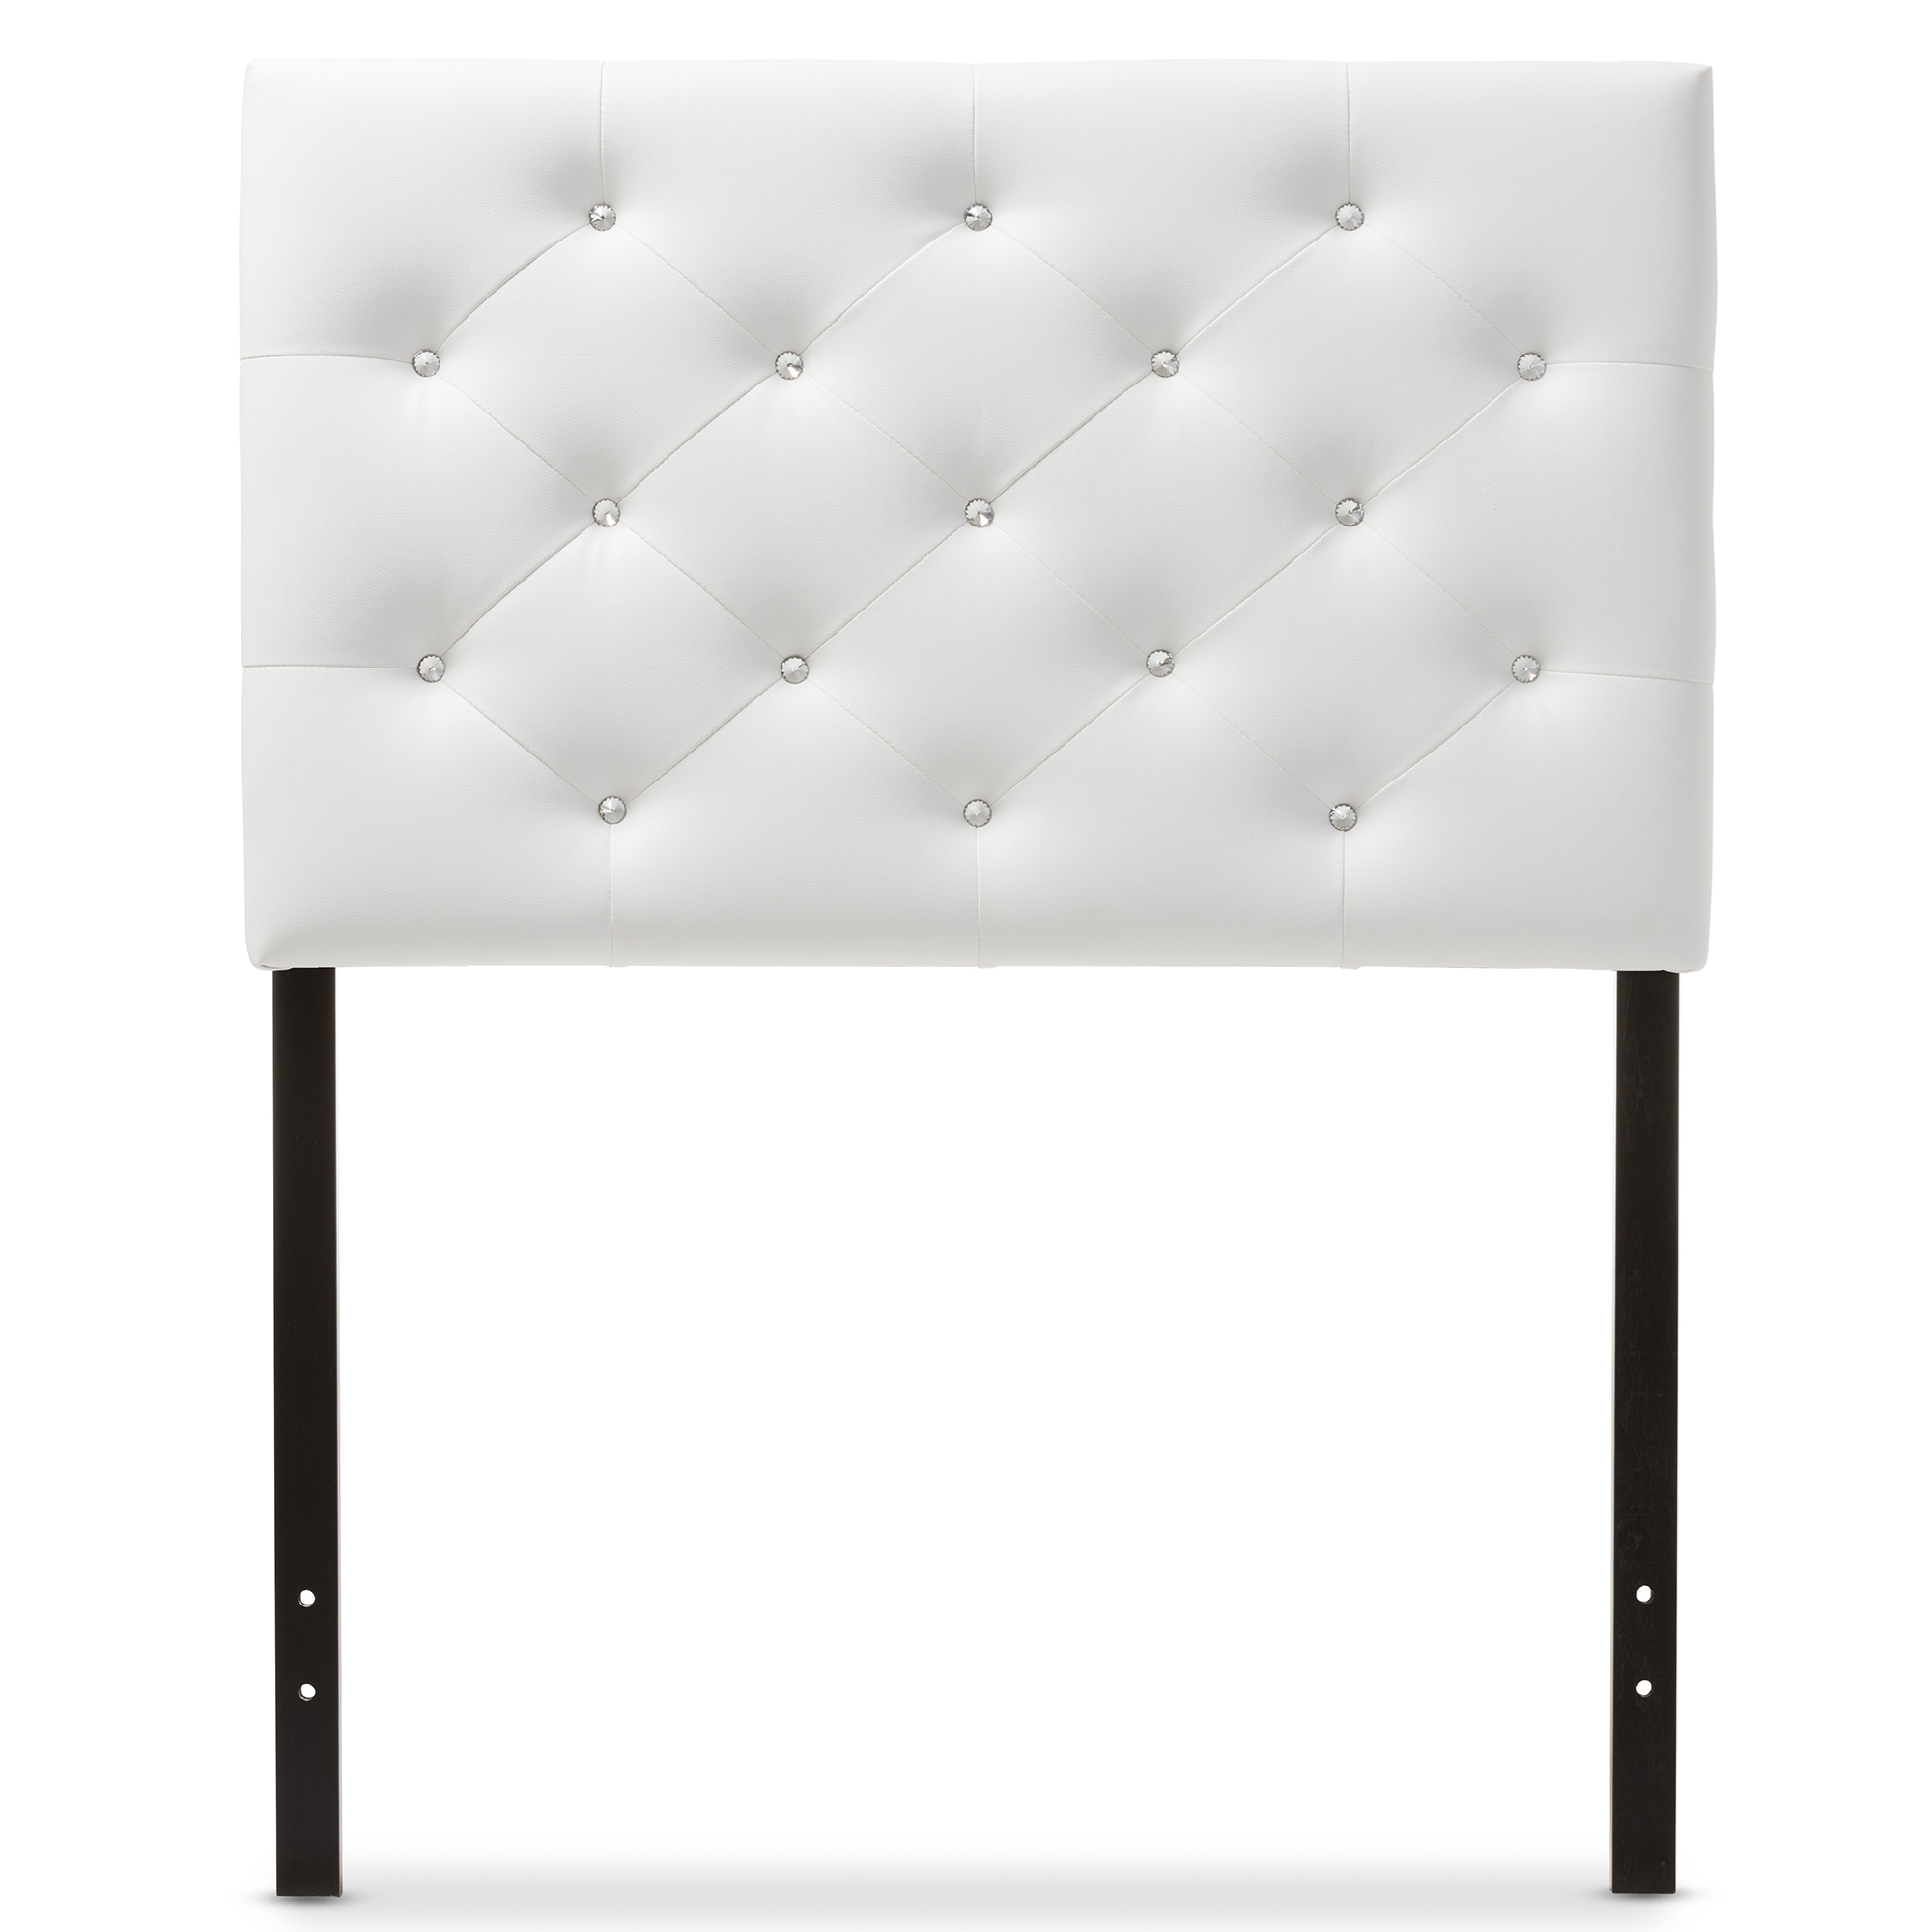 Upholstered King Queen Twin Size Headboard Button Tufted Adjustable Headboards